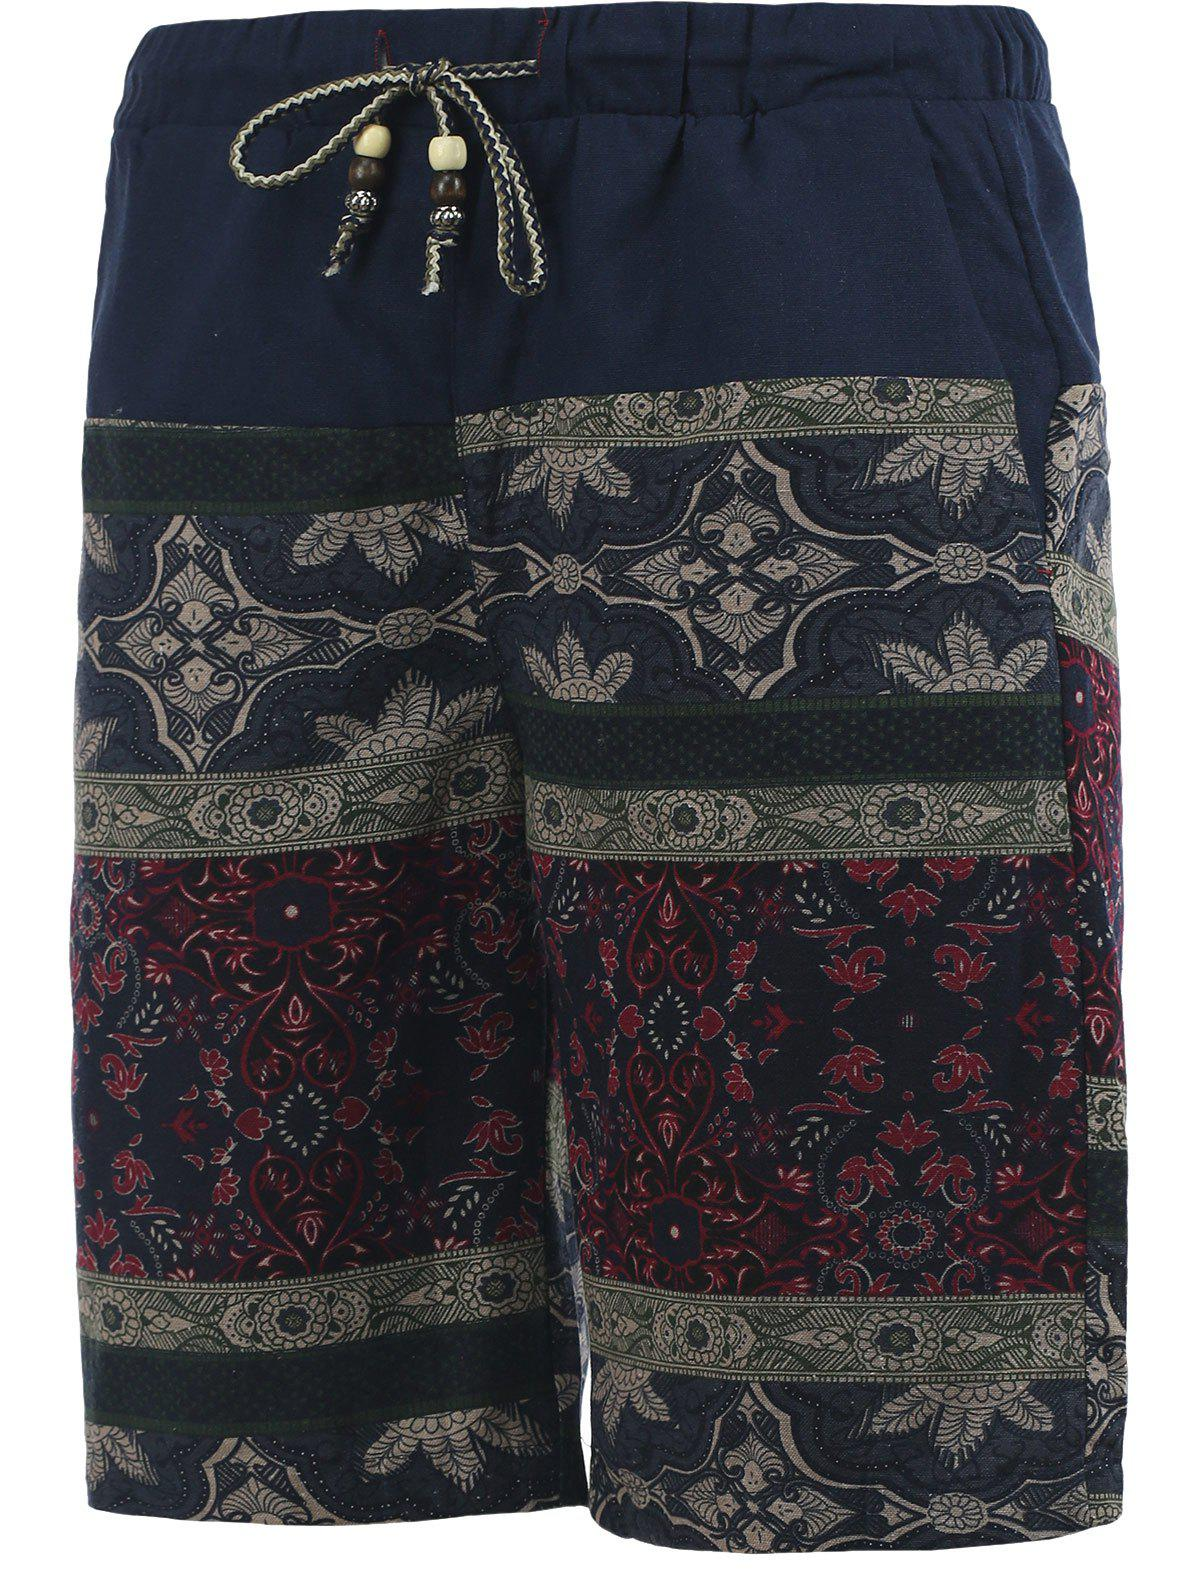 Ornate Printed Drawstring Spliced Men's Cuffed Board Shorts - COLORMIX 5XL